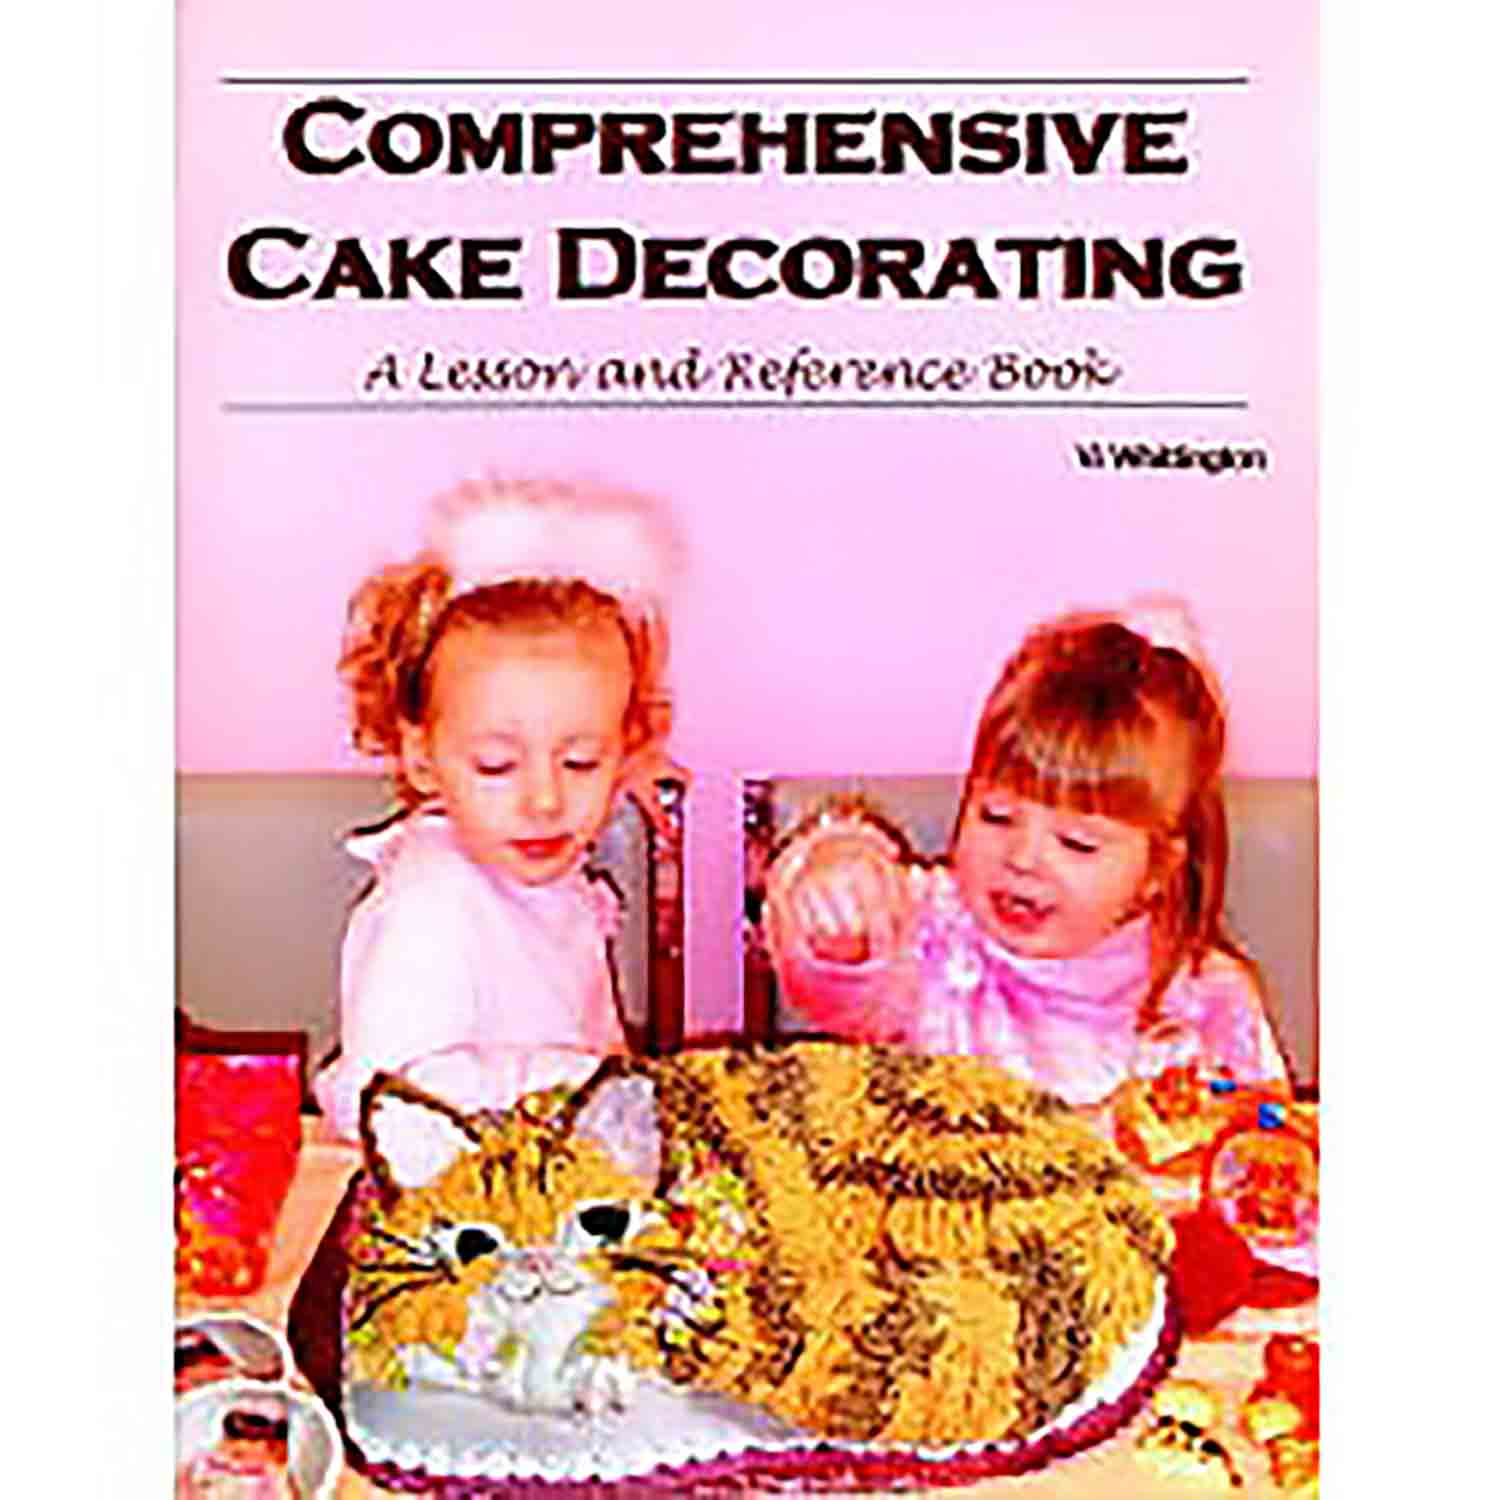 Whittington - Comprehensive Cake Decorating Book